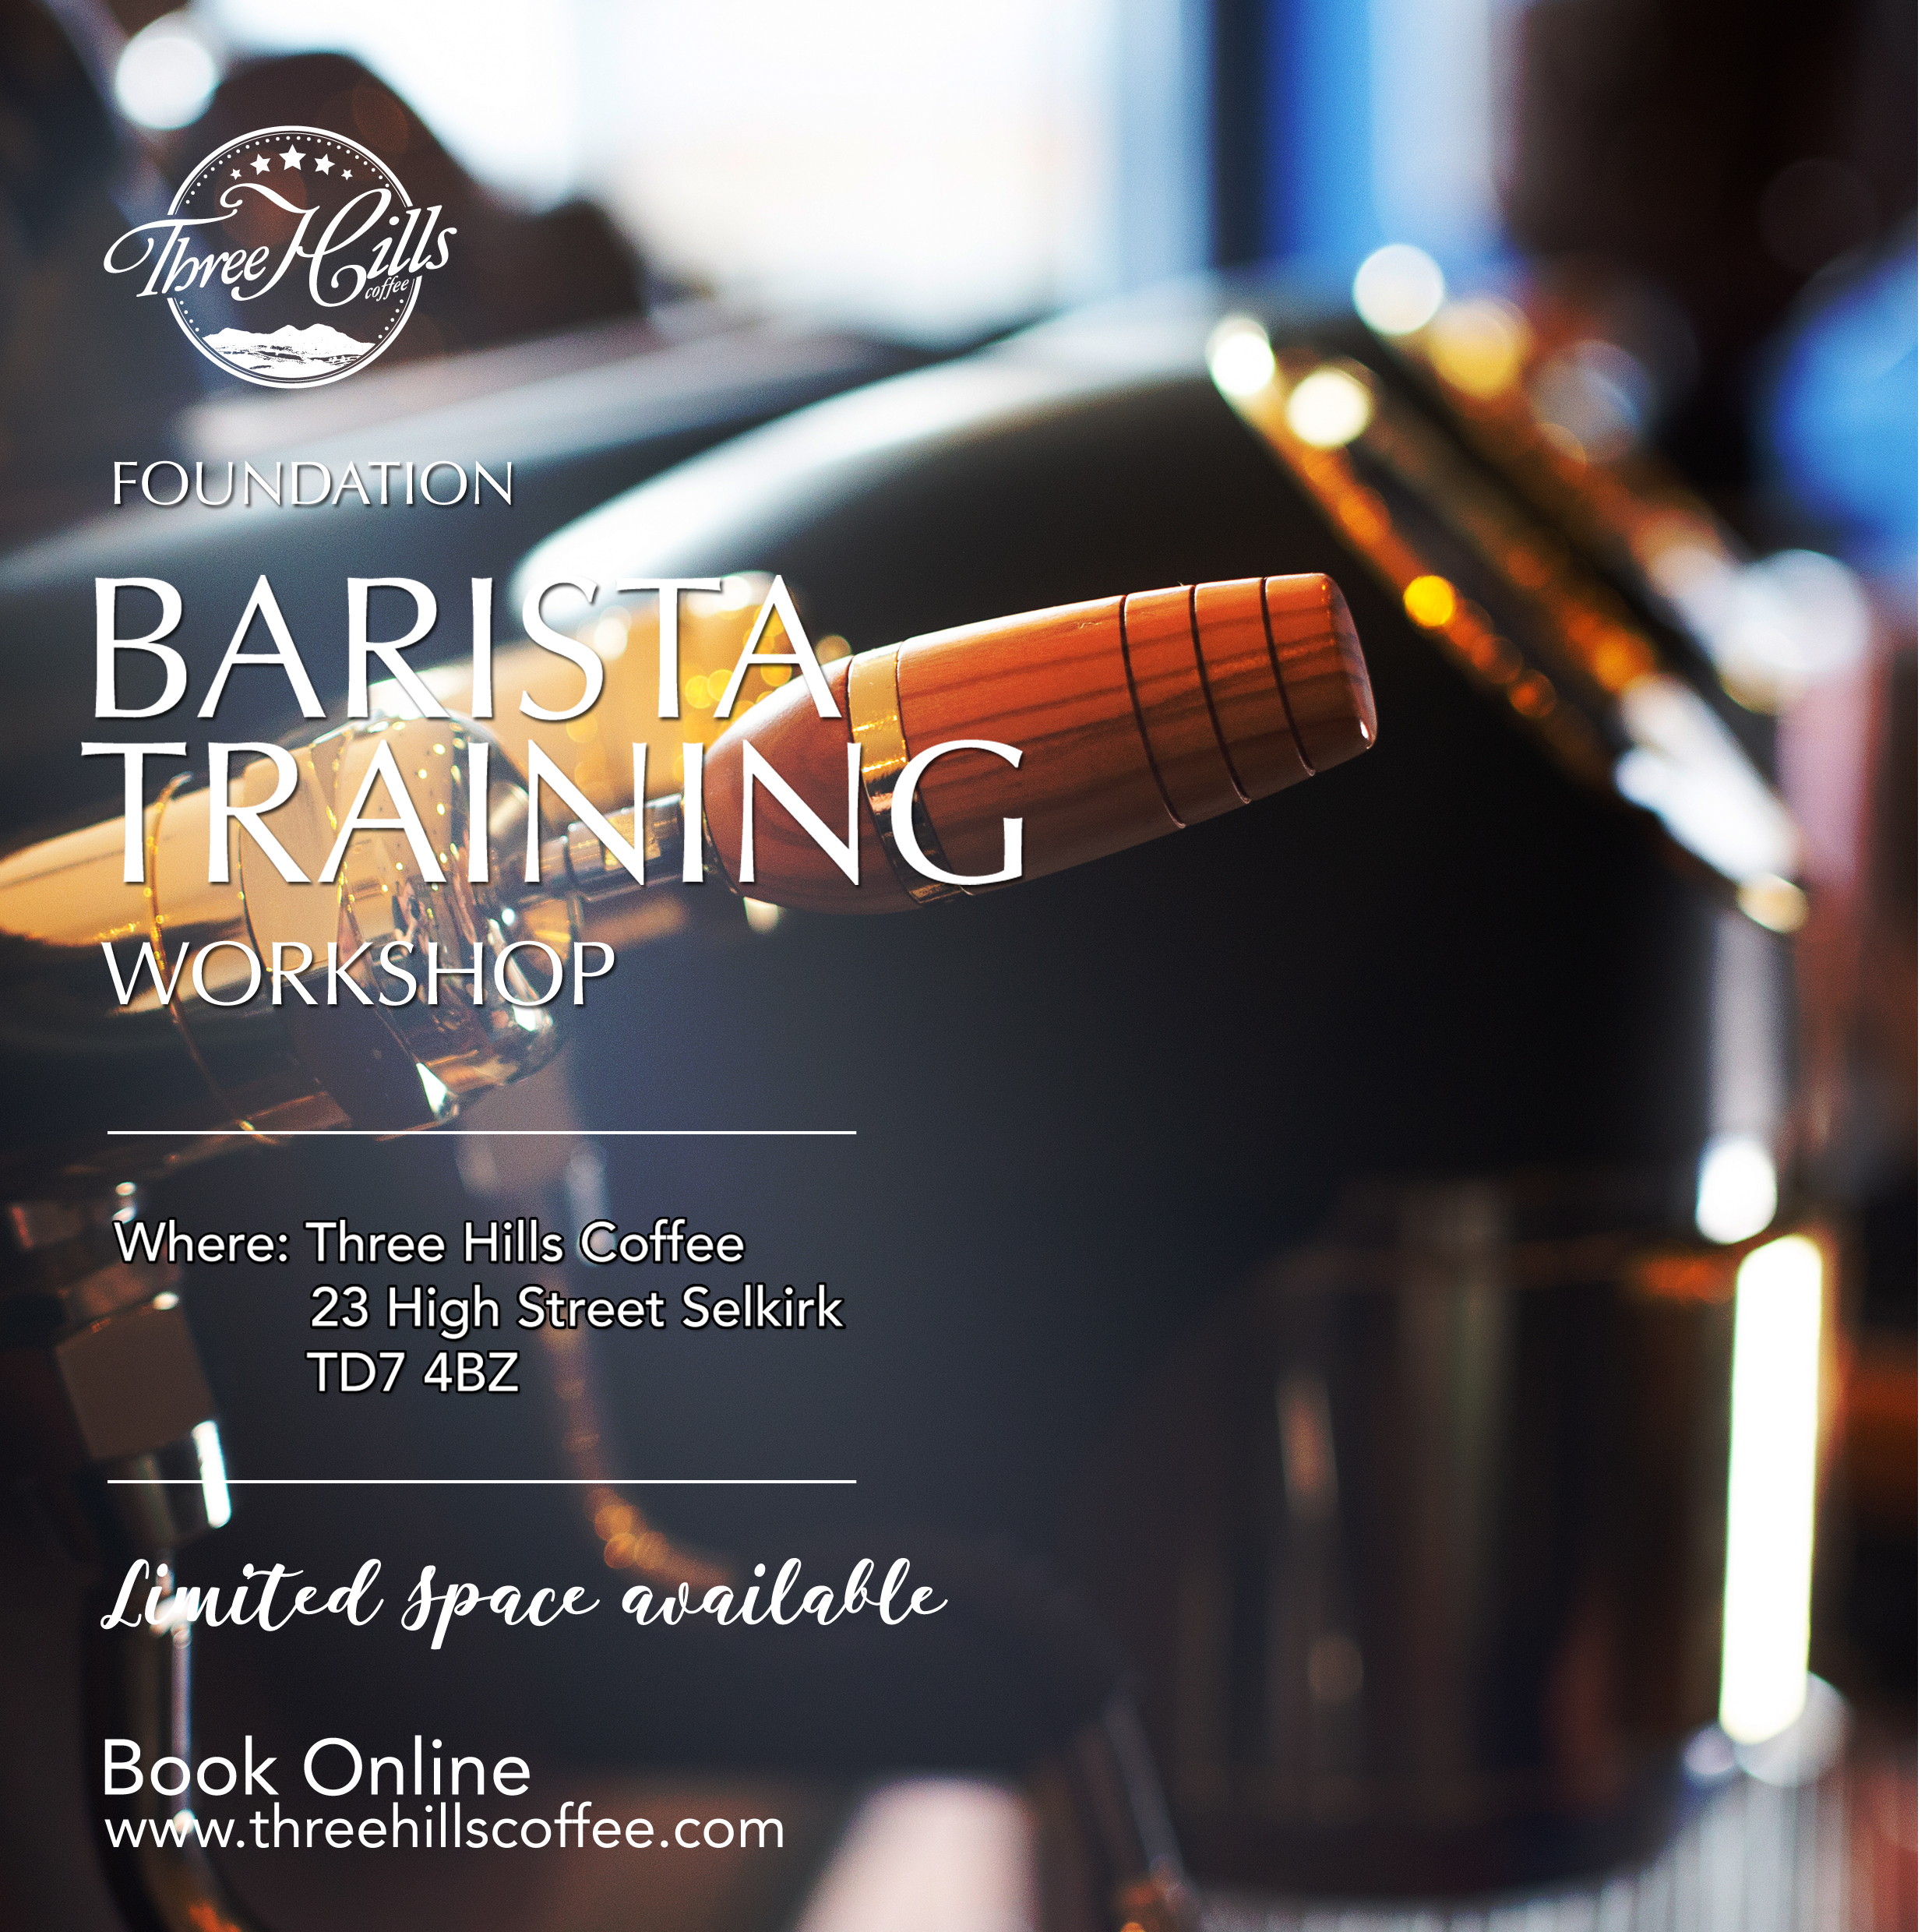 Foundation barista course